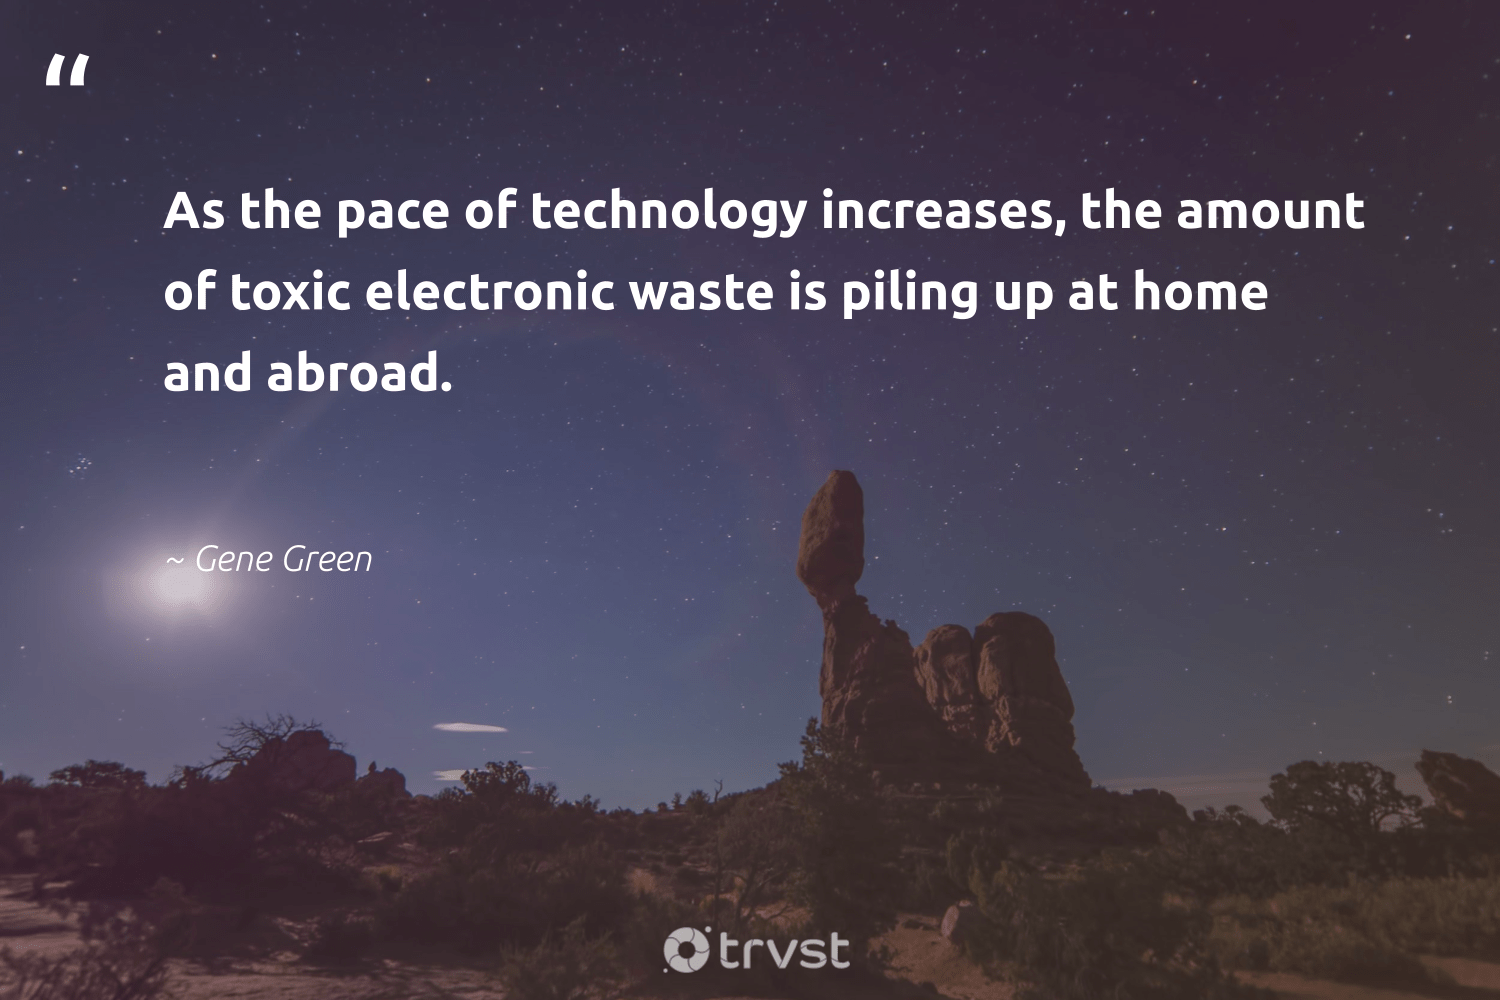 """""""As the pace of technology increases, the amount of toxic electronic waste is piling up at home and abroad.""""  - Gene Green #trvst #quotes #electronicwaste #waste #toxic #ewaste #wecandobetter #ecofriendly #socialimpact #e-waste #waronwaste #bethechange"""